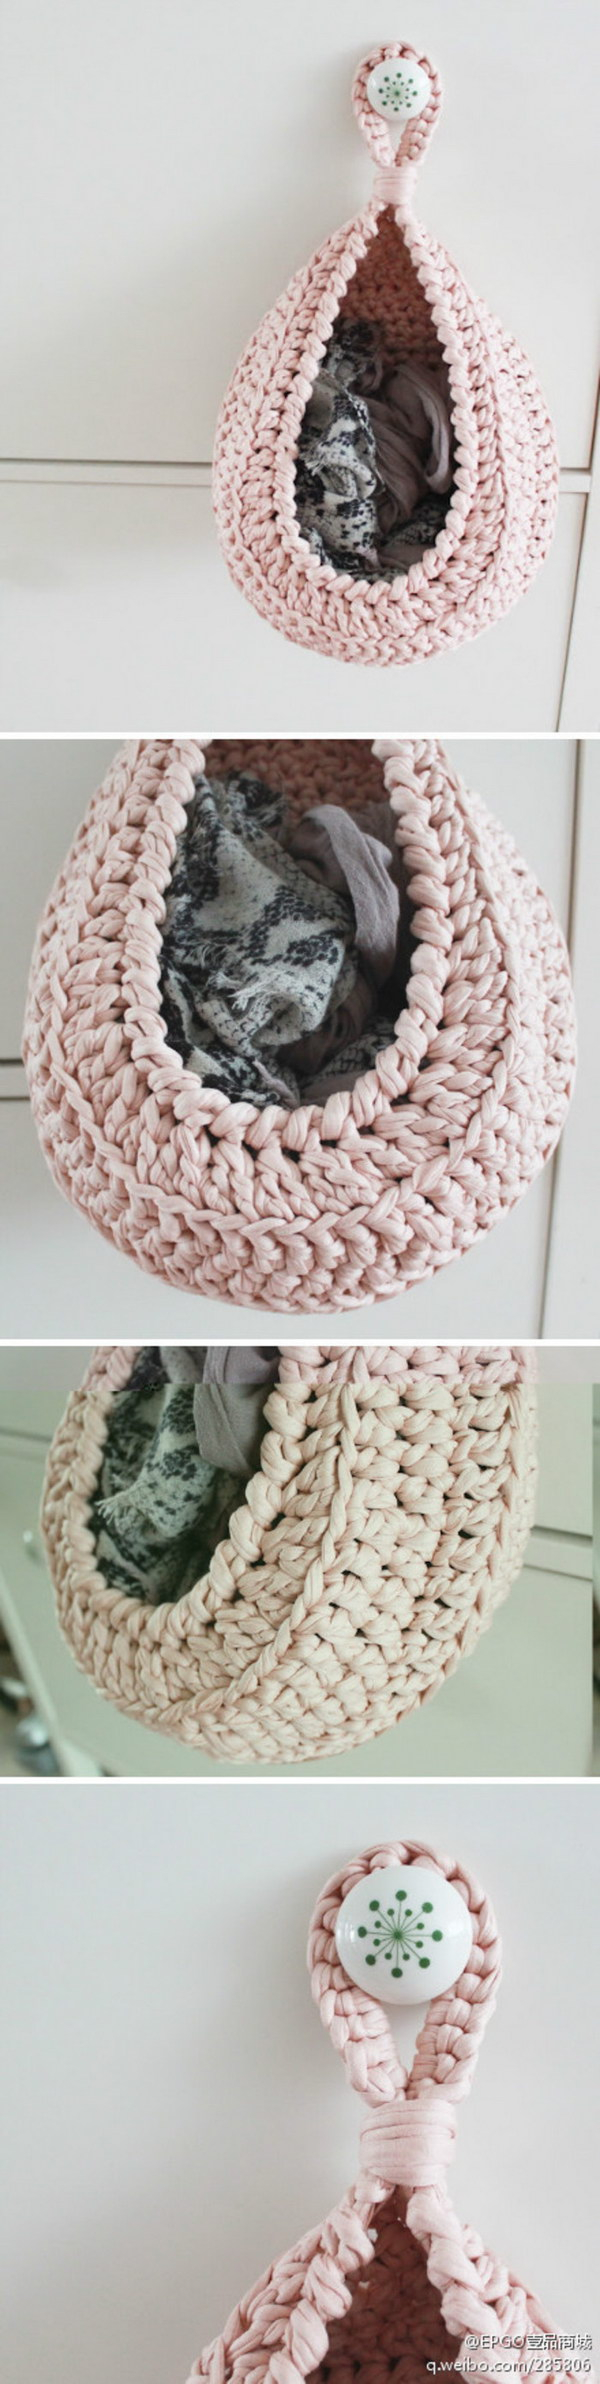 Crochet Cat Bed Pattern Free 30 Easy Crochet Projects With Free Patterns For Beginners